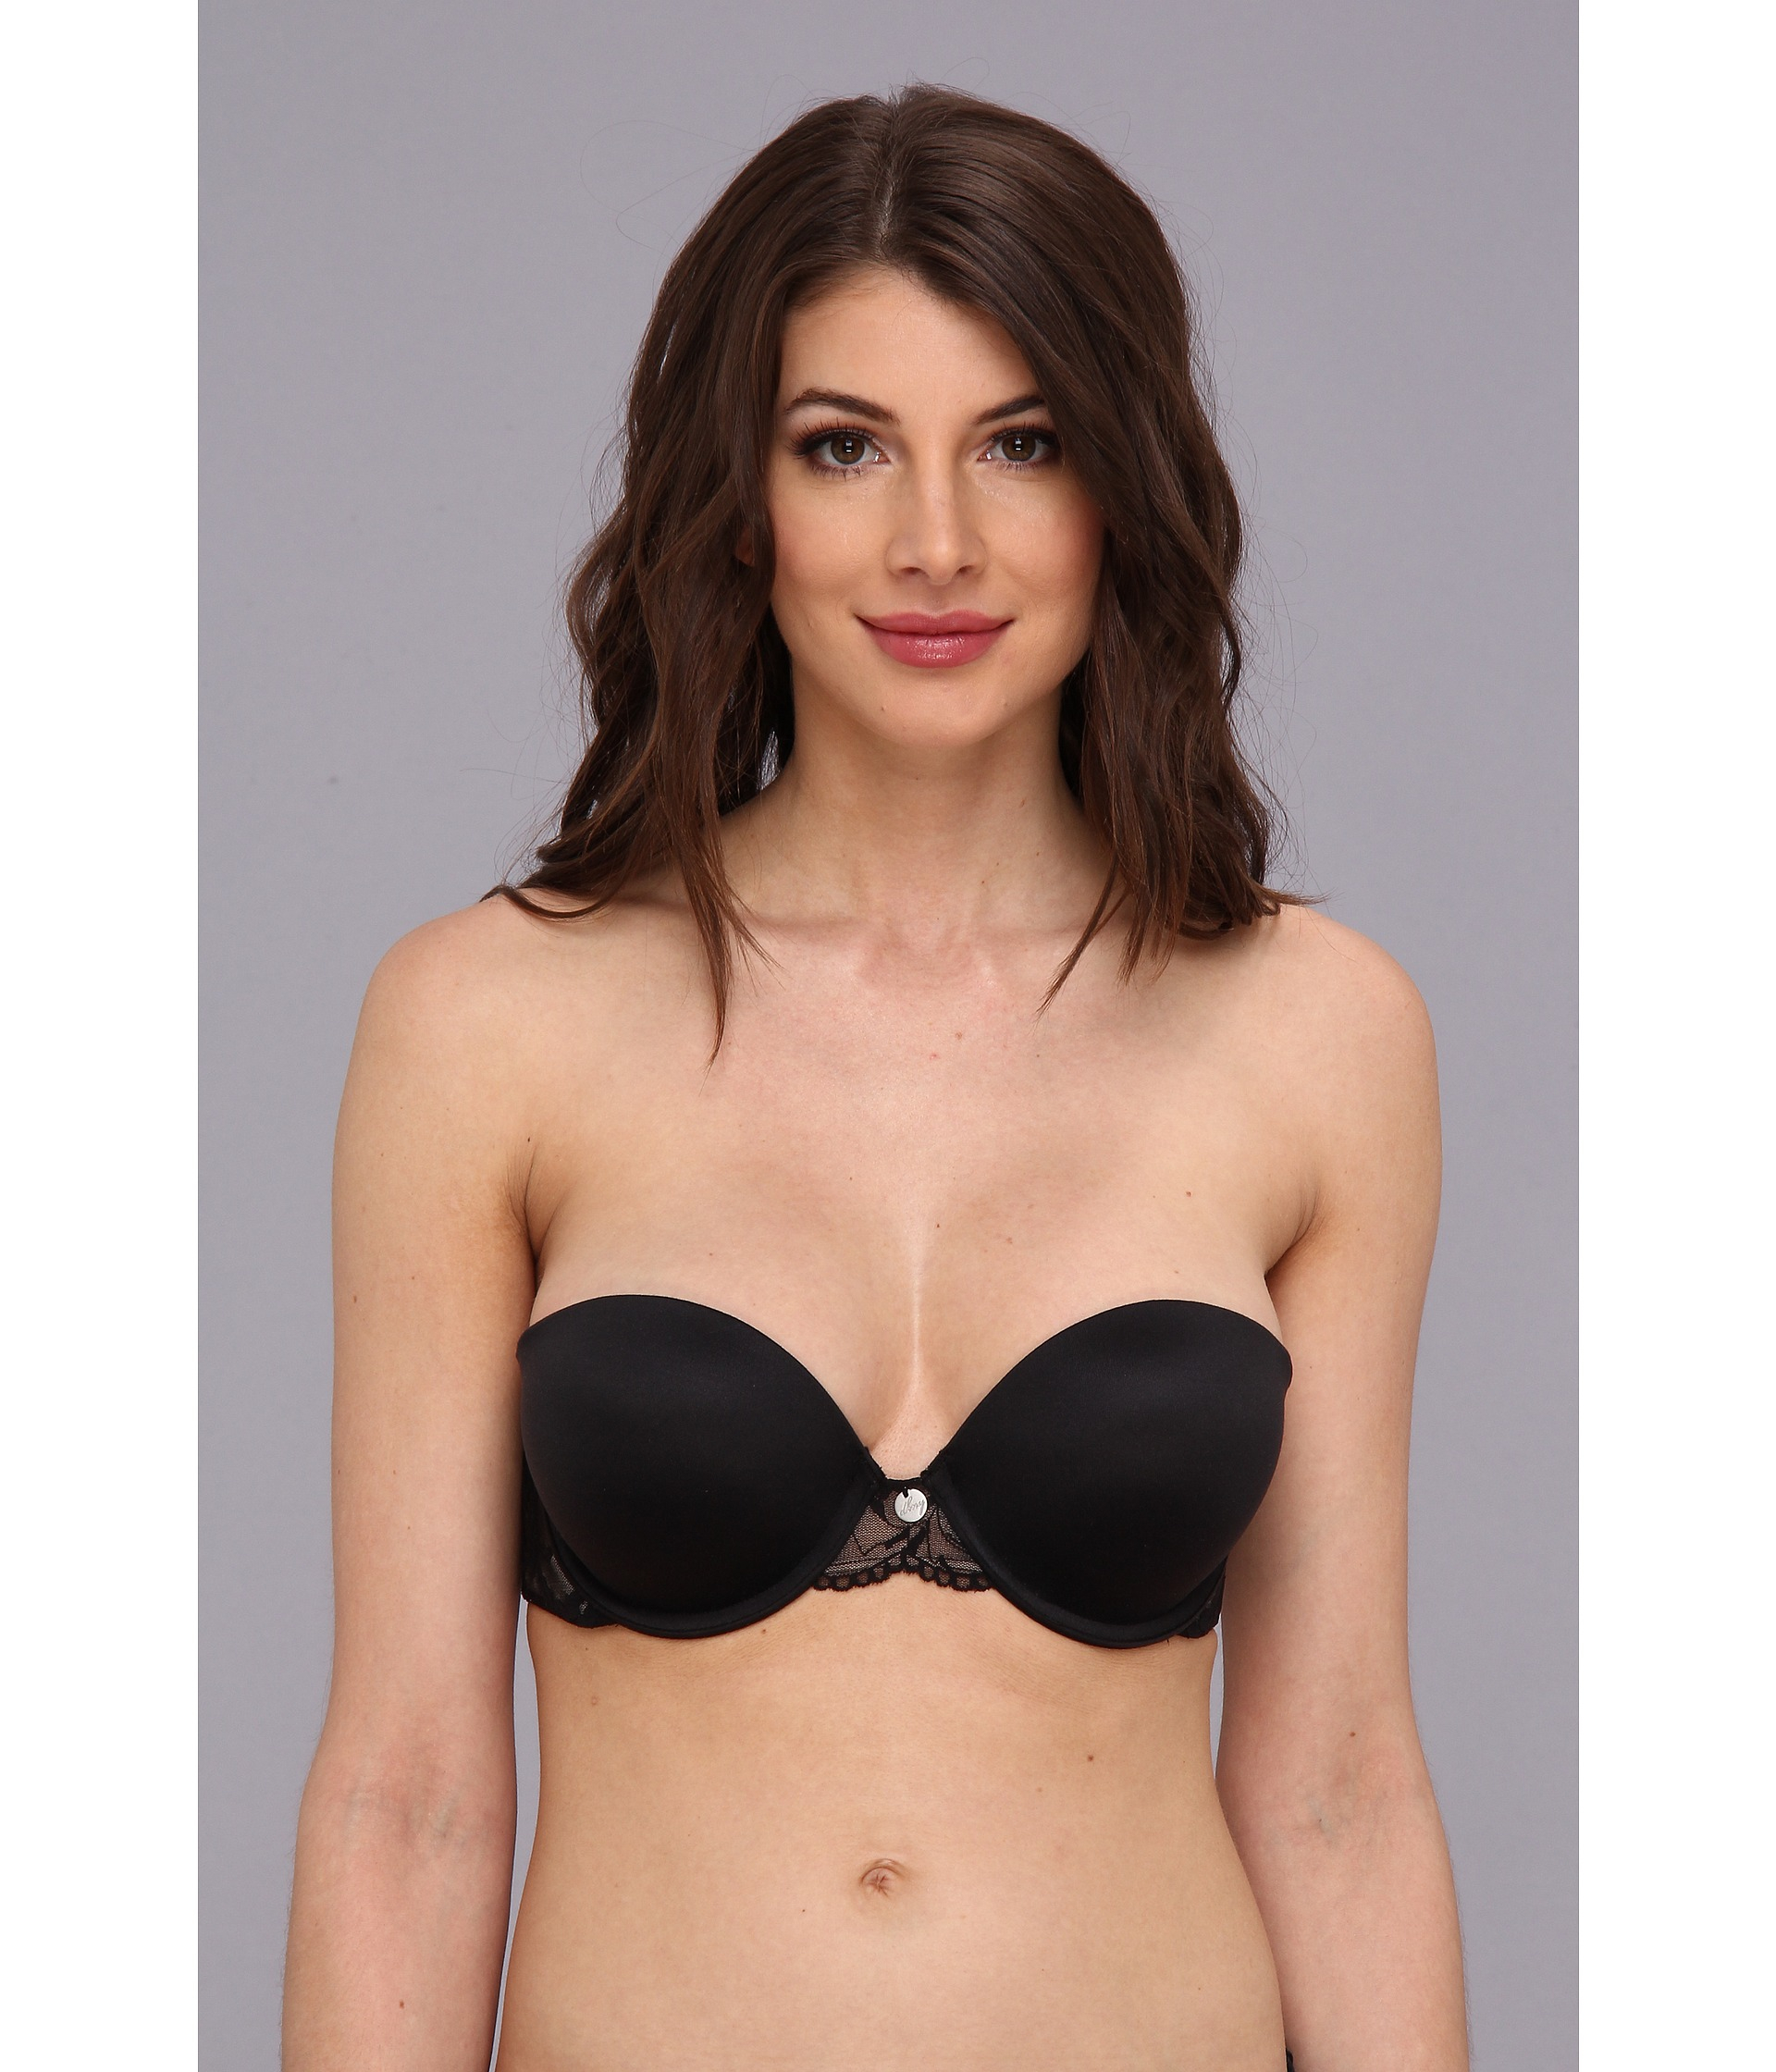 2a95376c967f1 Lyst - DKNY Super Glam Strapless Push-up Bra 458111 in Black